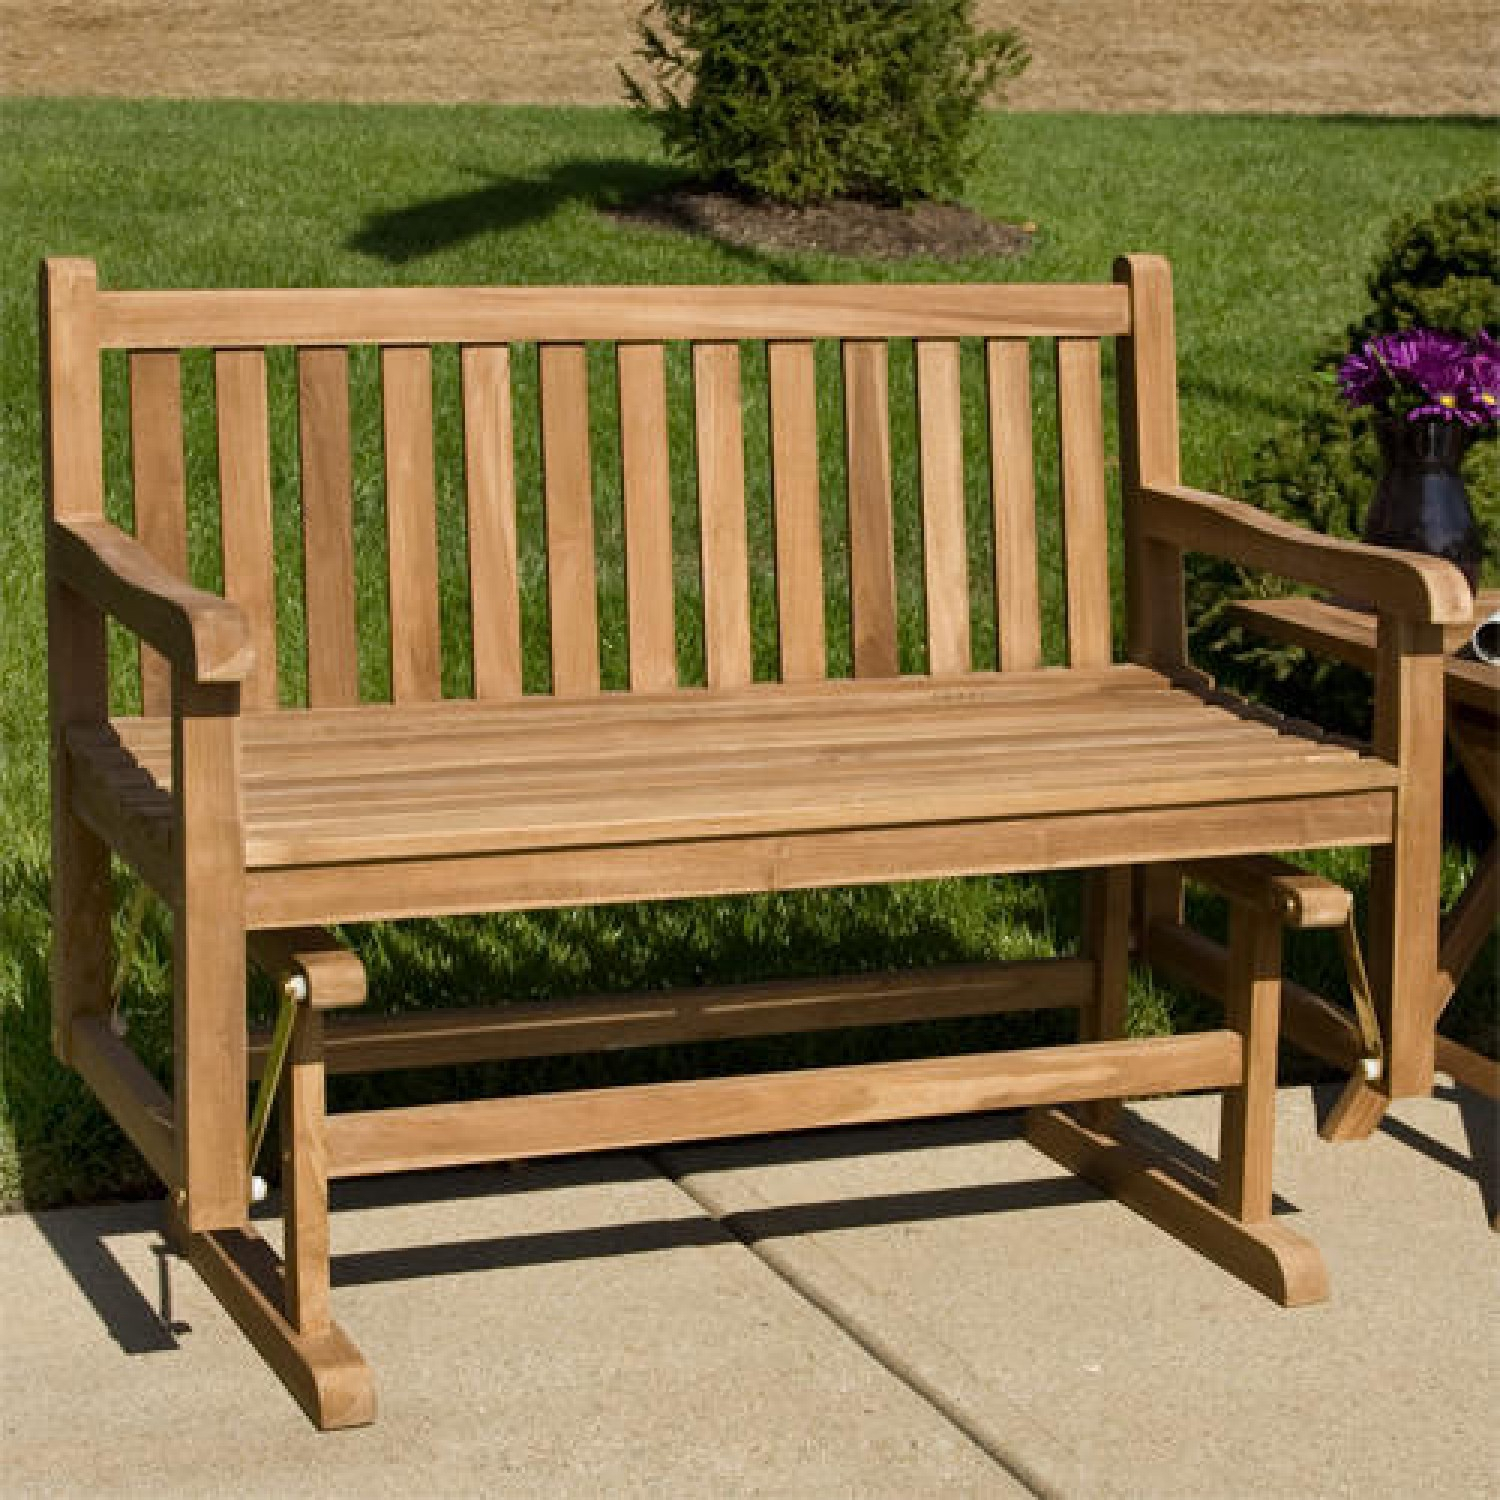 Build Outdoor Glider Bench : Outdoor Decorations – What Is With Teak Outdoor Glider Benches (View 8 of 25)